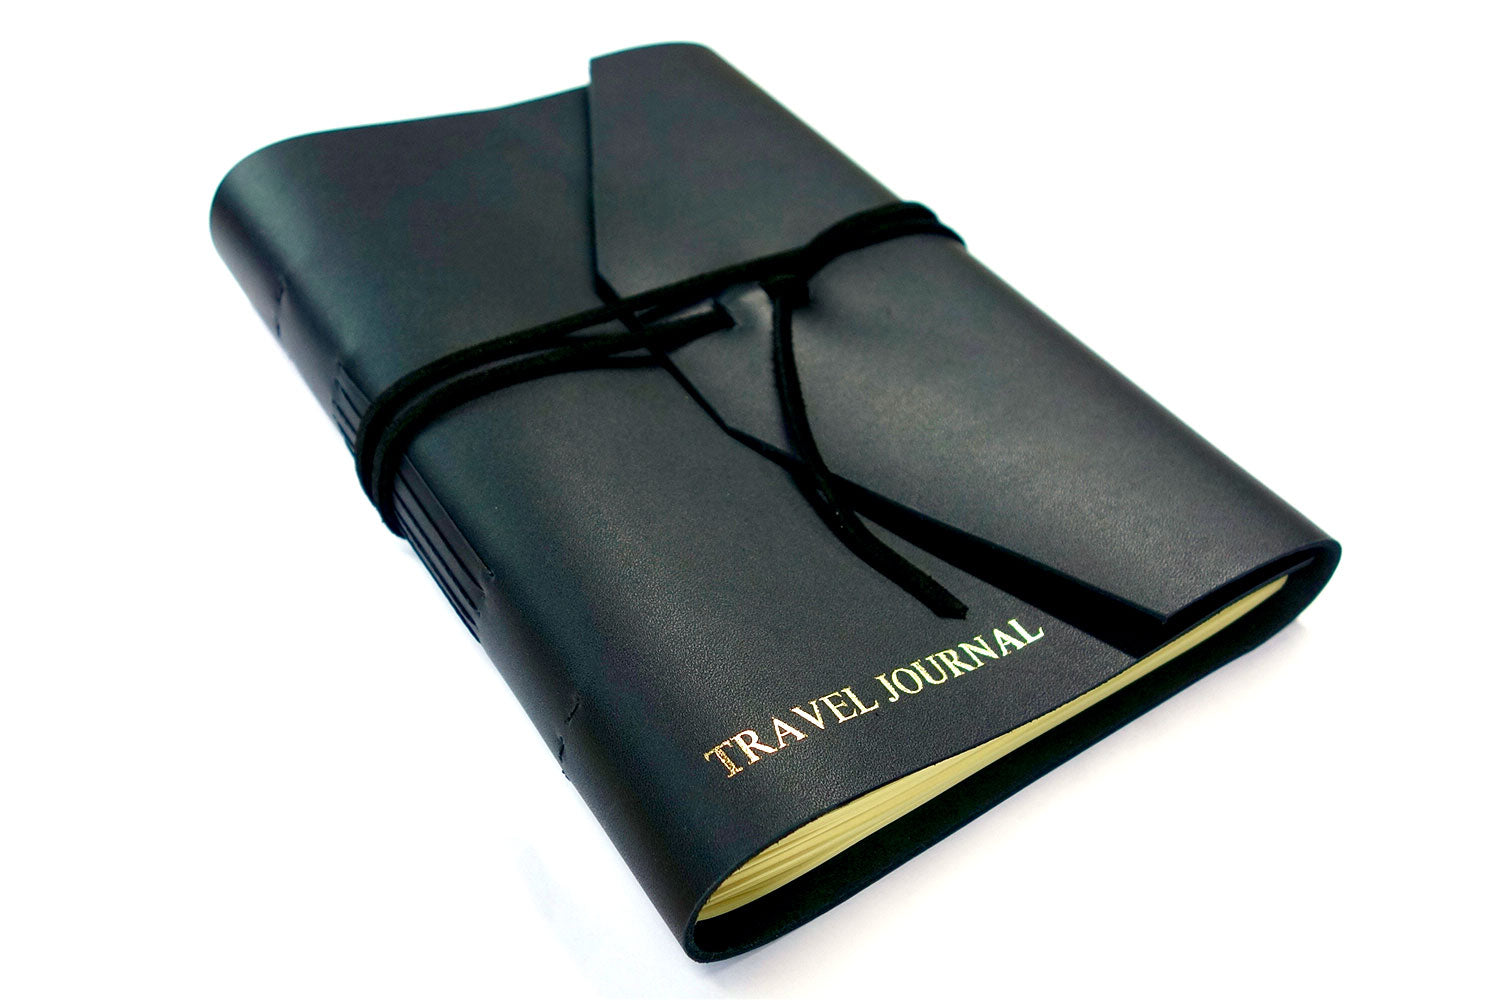 Personalized leather journal in black leather from Bookshell bindery with Travel Journal embossed in gold on the cover